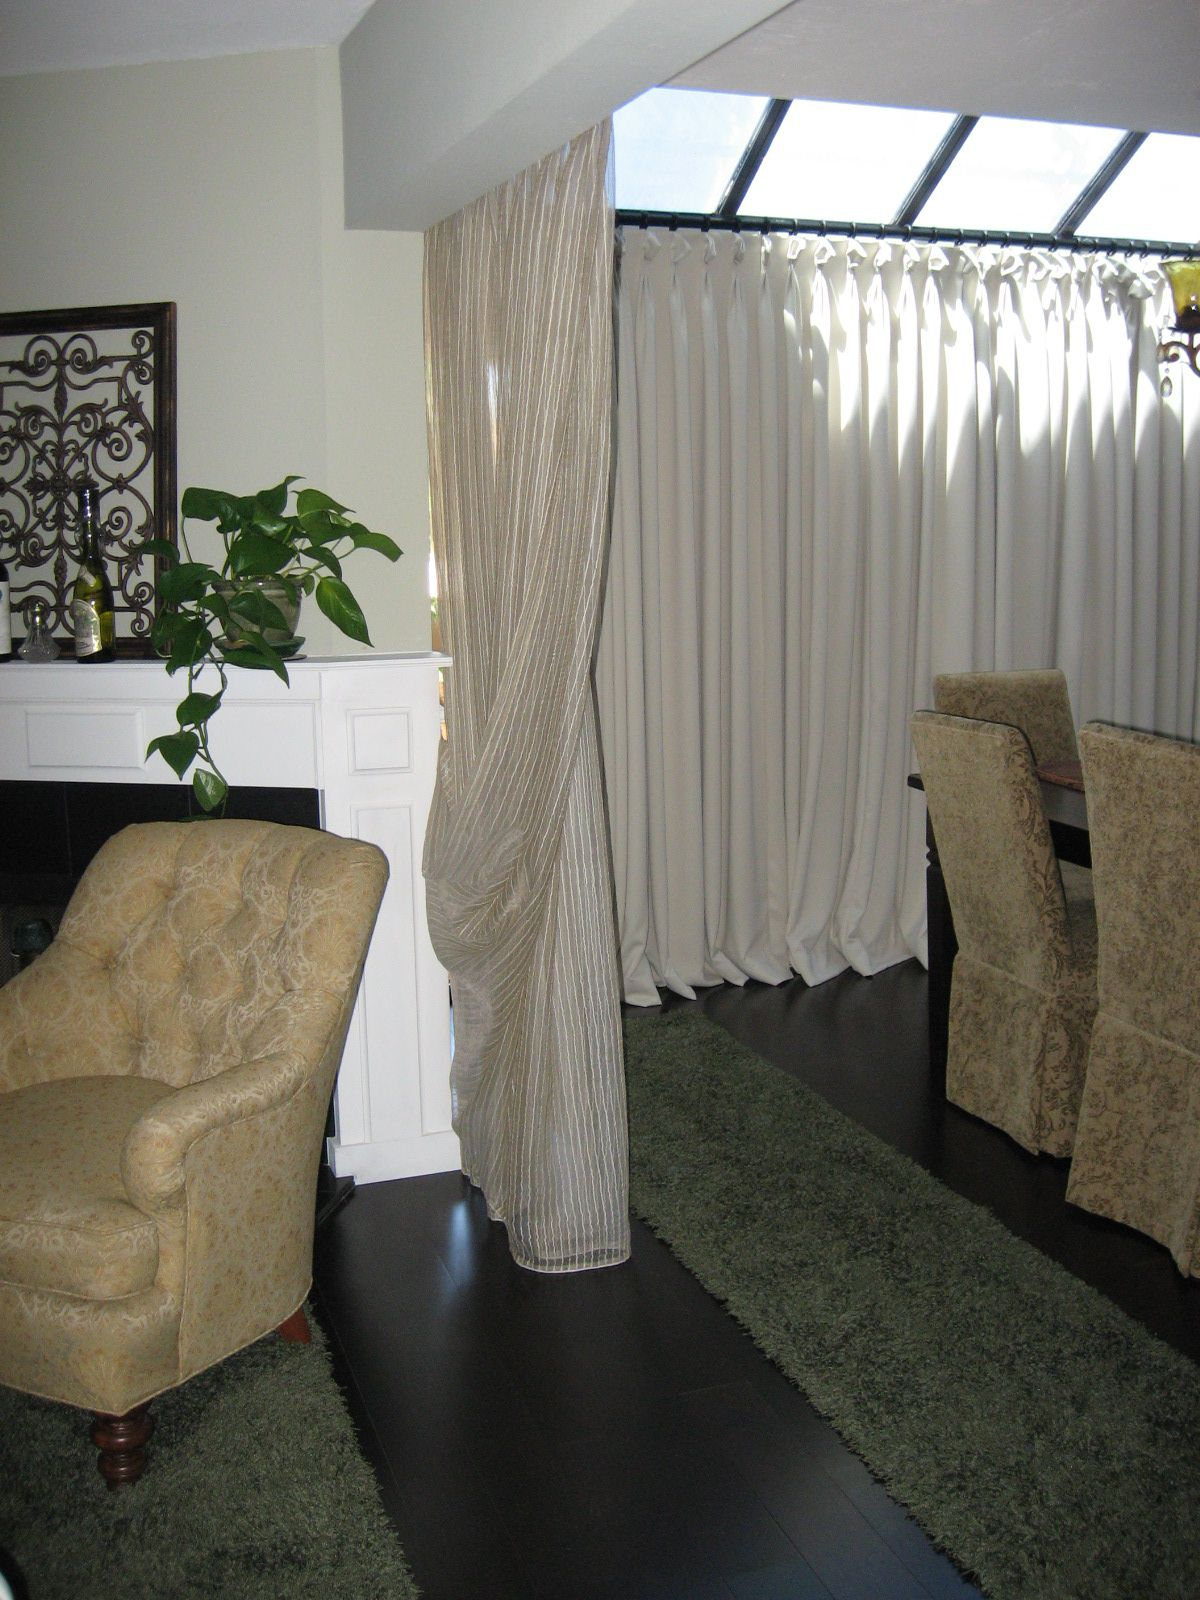 Portable Curtain Room Dividers Go to ChineseFurnitureShop for